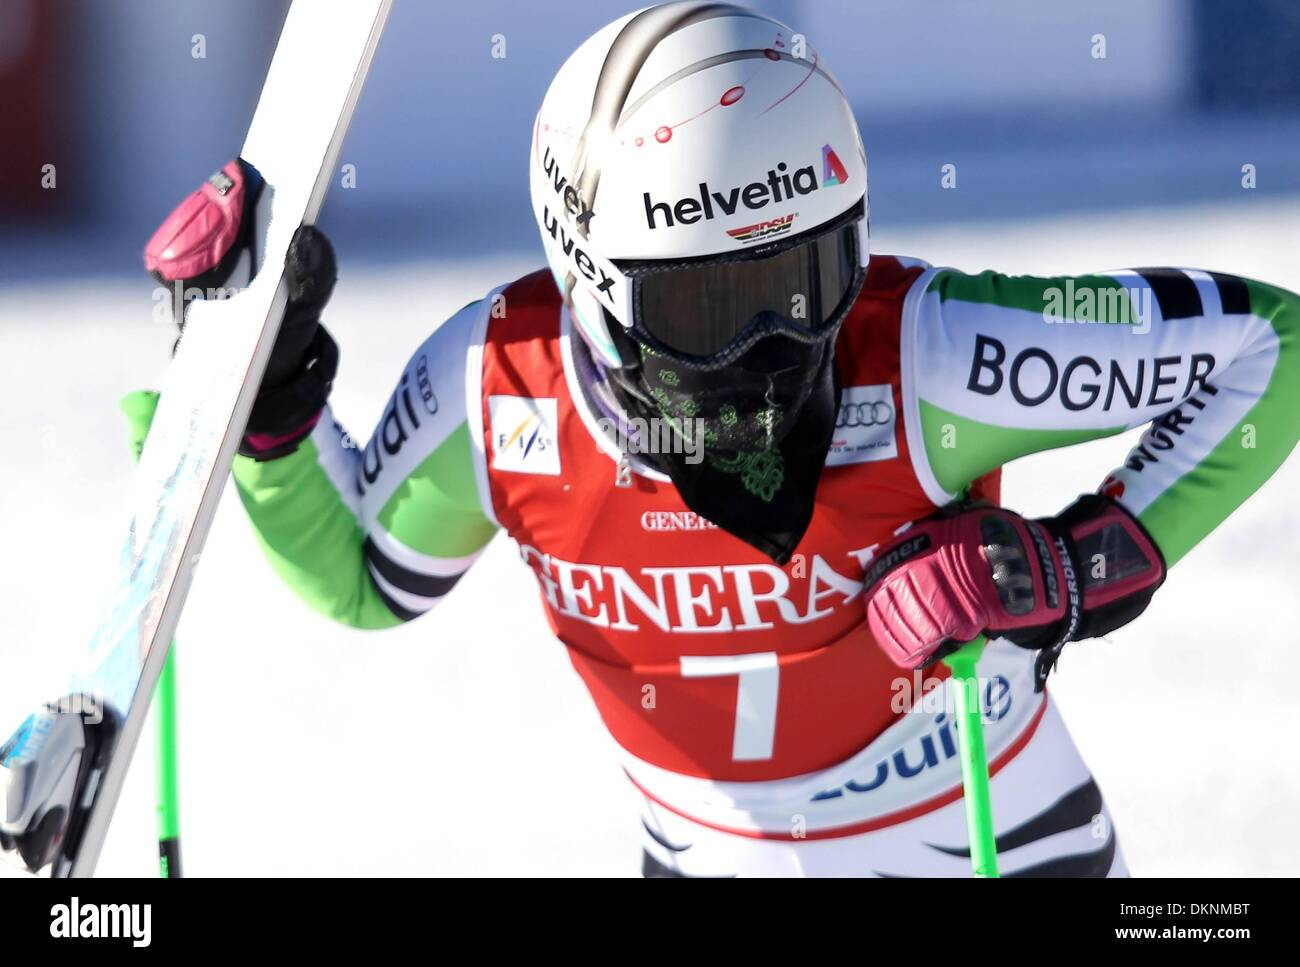 07.12.2013  FIS WC Lake Louise, Canada.Womens world cup downhill skiing Viktoria Regensburg (GER). - Stock Image